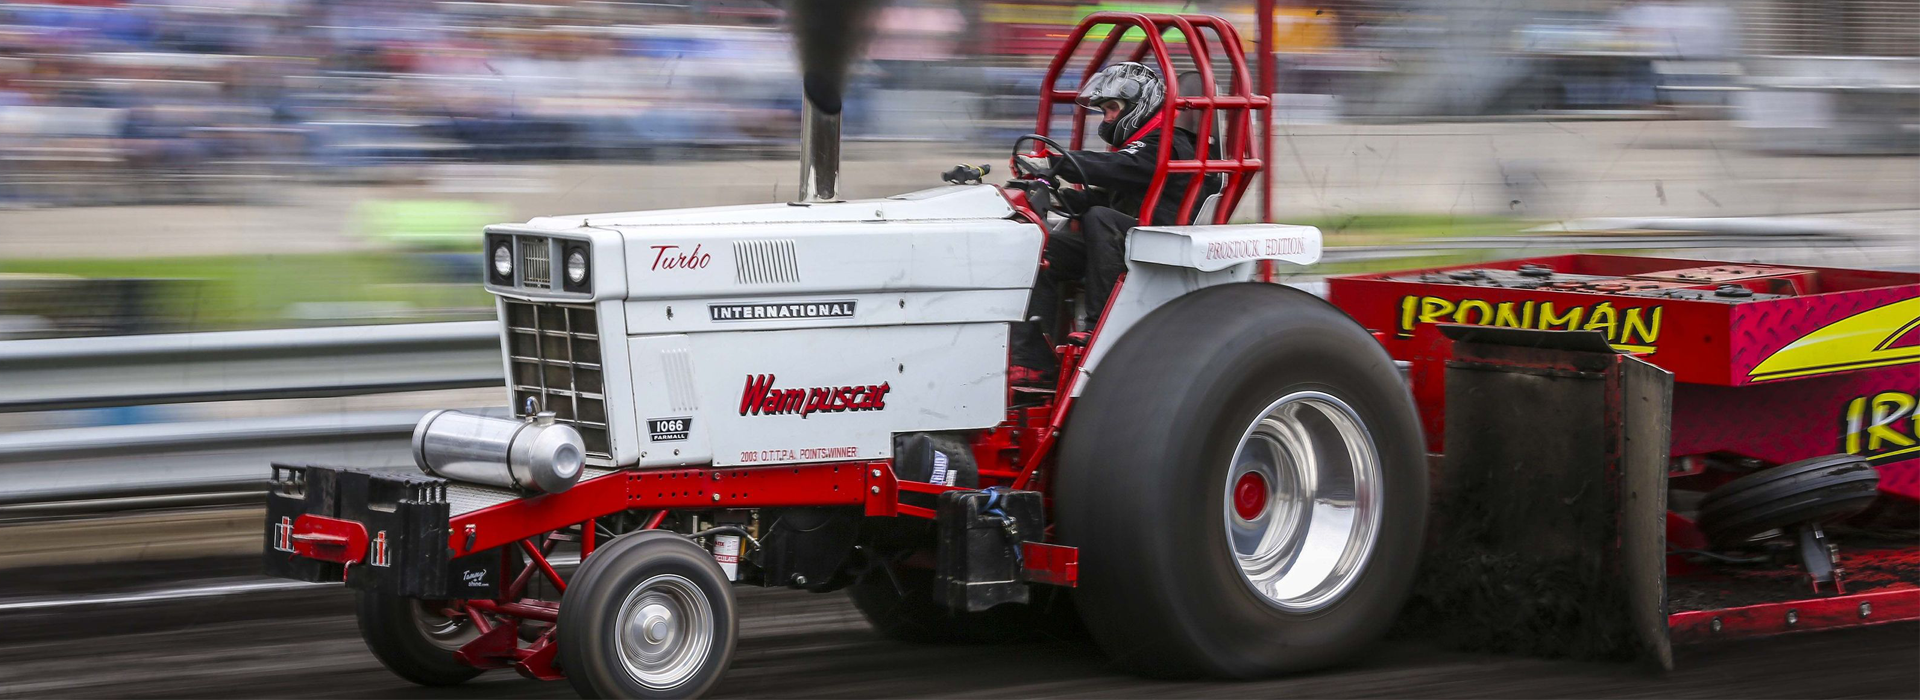 This Is The OTTPA - Outlaw Truck and Tractor Pulling Association